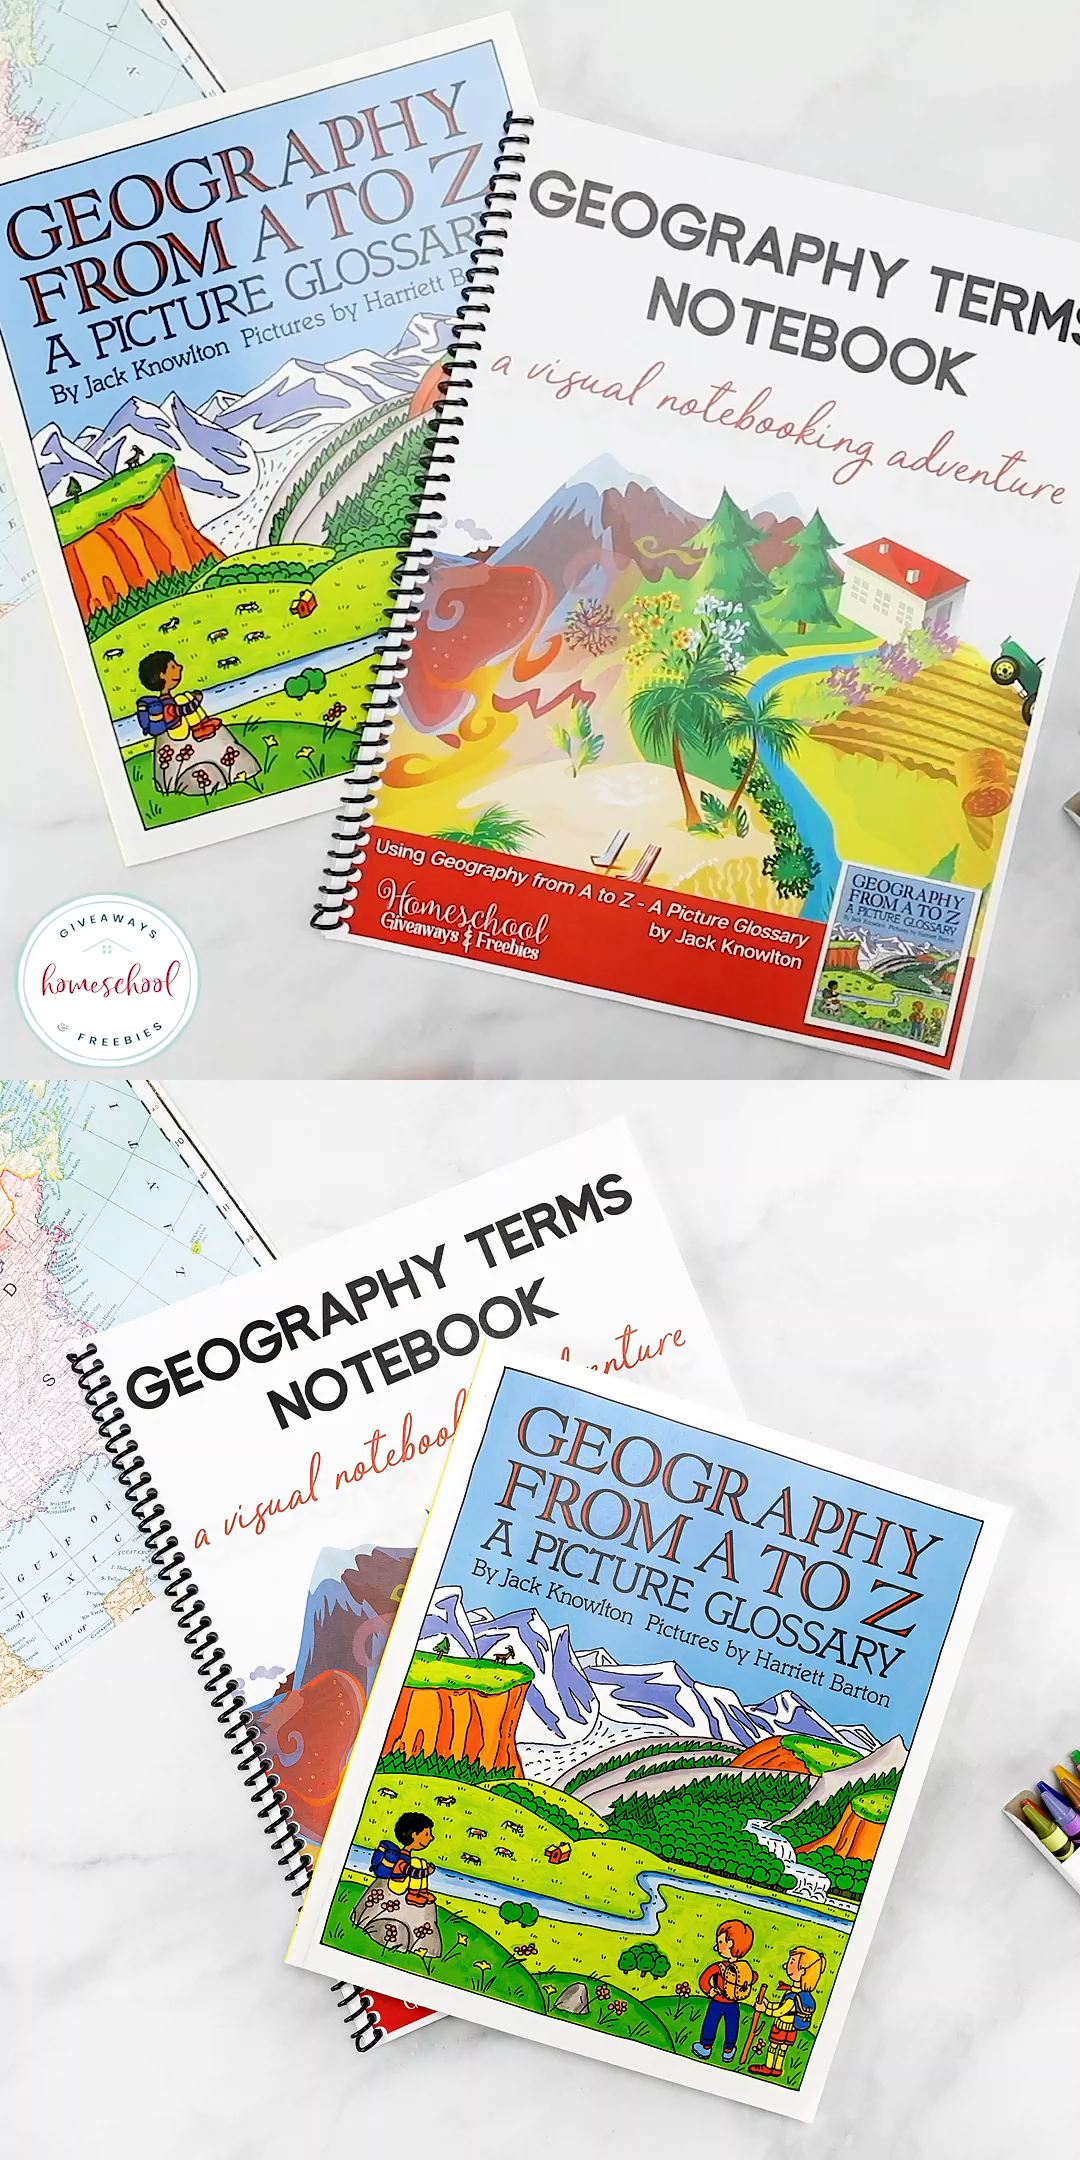 Geography Terms Notebook A Visual Notebooking Adventure